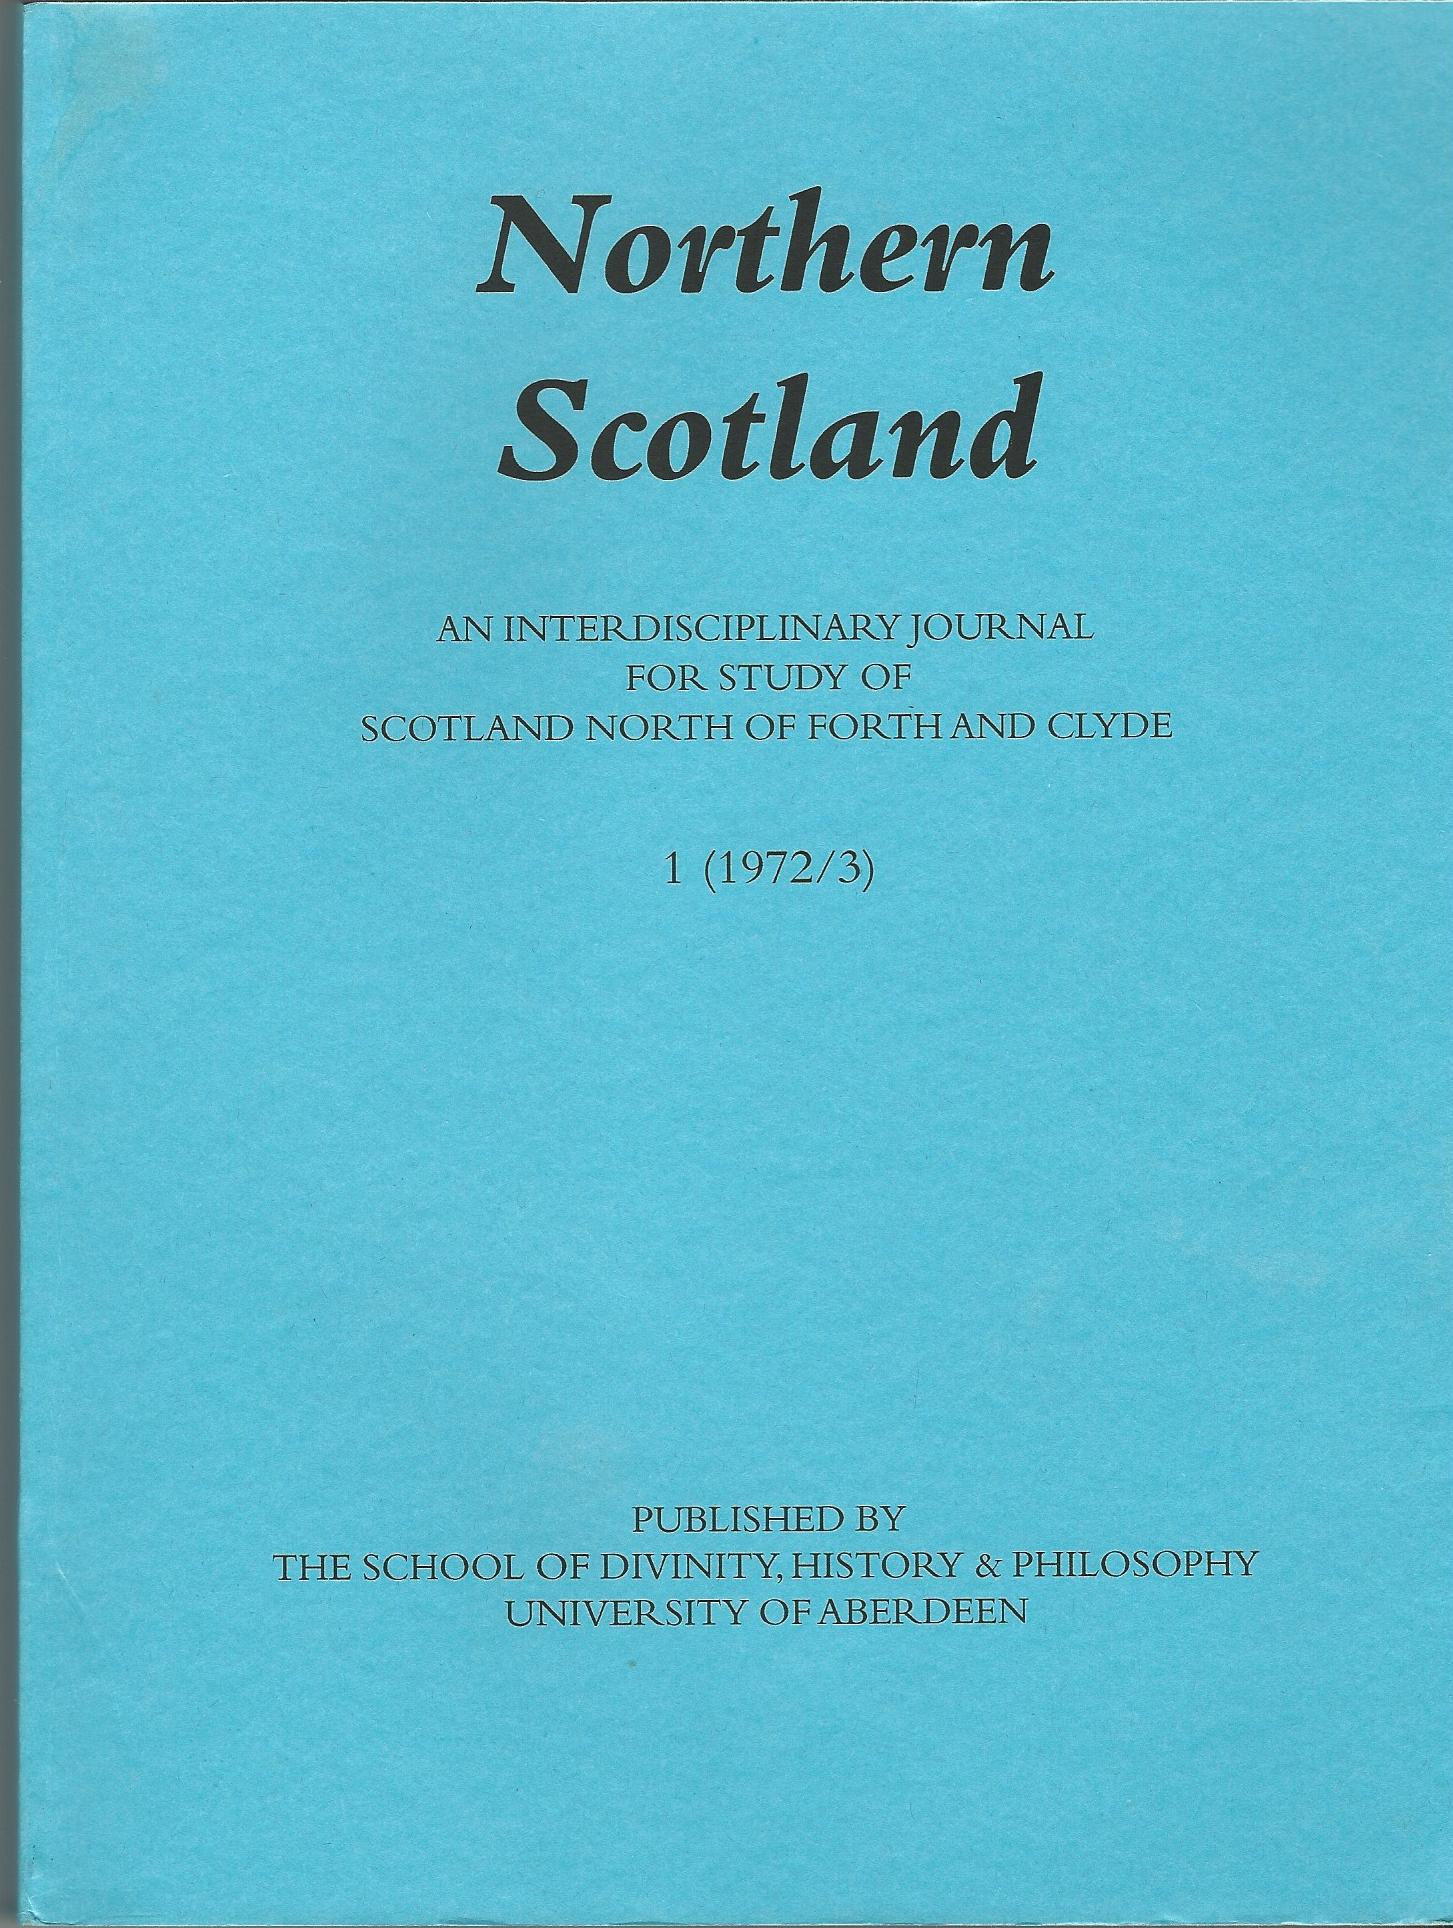 Northern Scotland: An Interdisciplinary Journal for Study of Scotland North of Forth and Clyde 1972-1977 (2 Volumes)